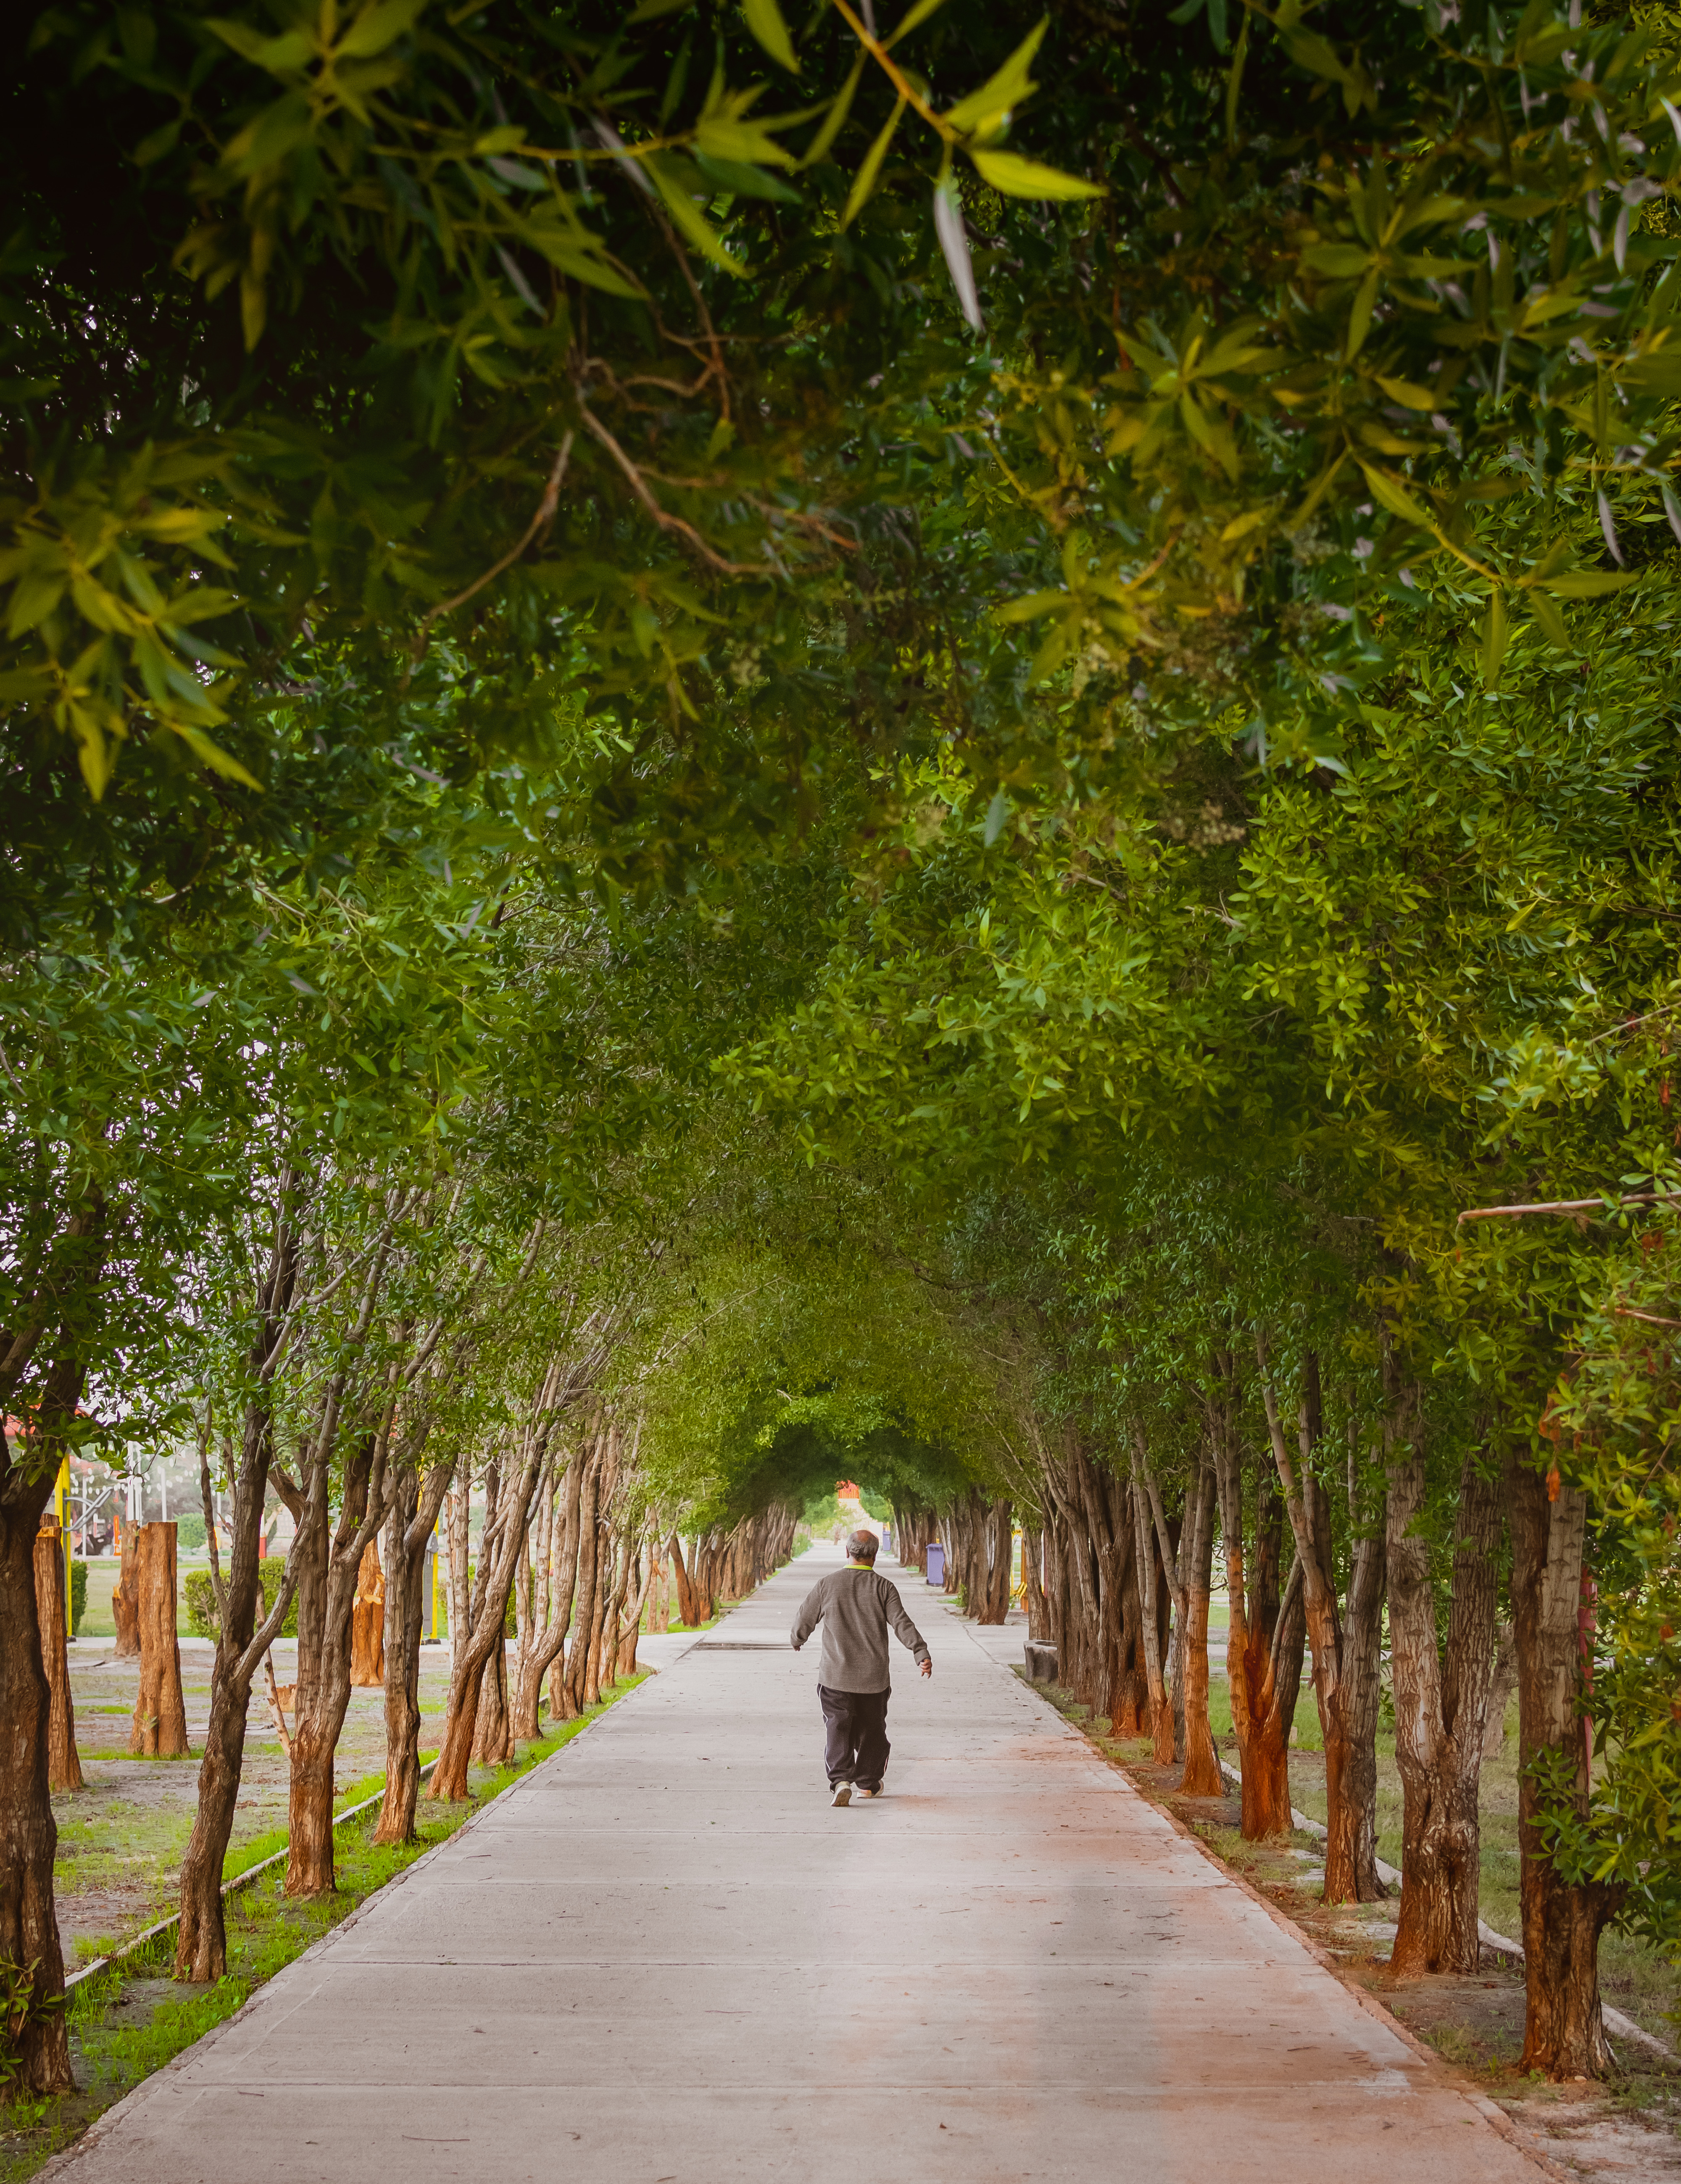 man walking on road in middle of trees during daytime